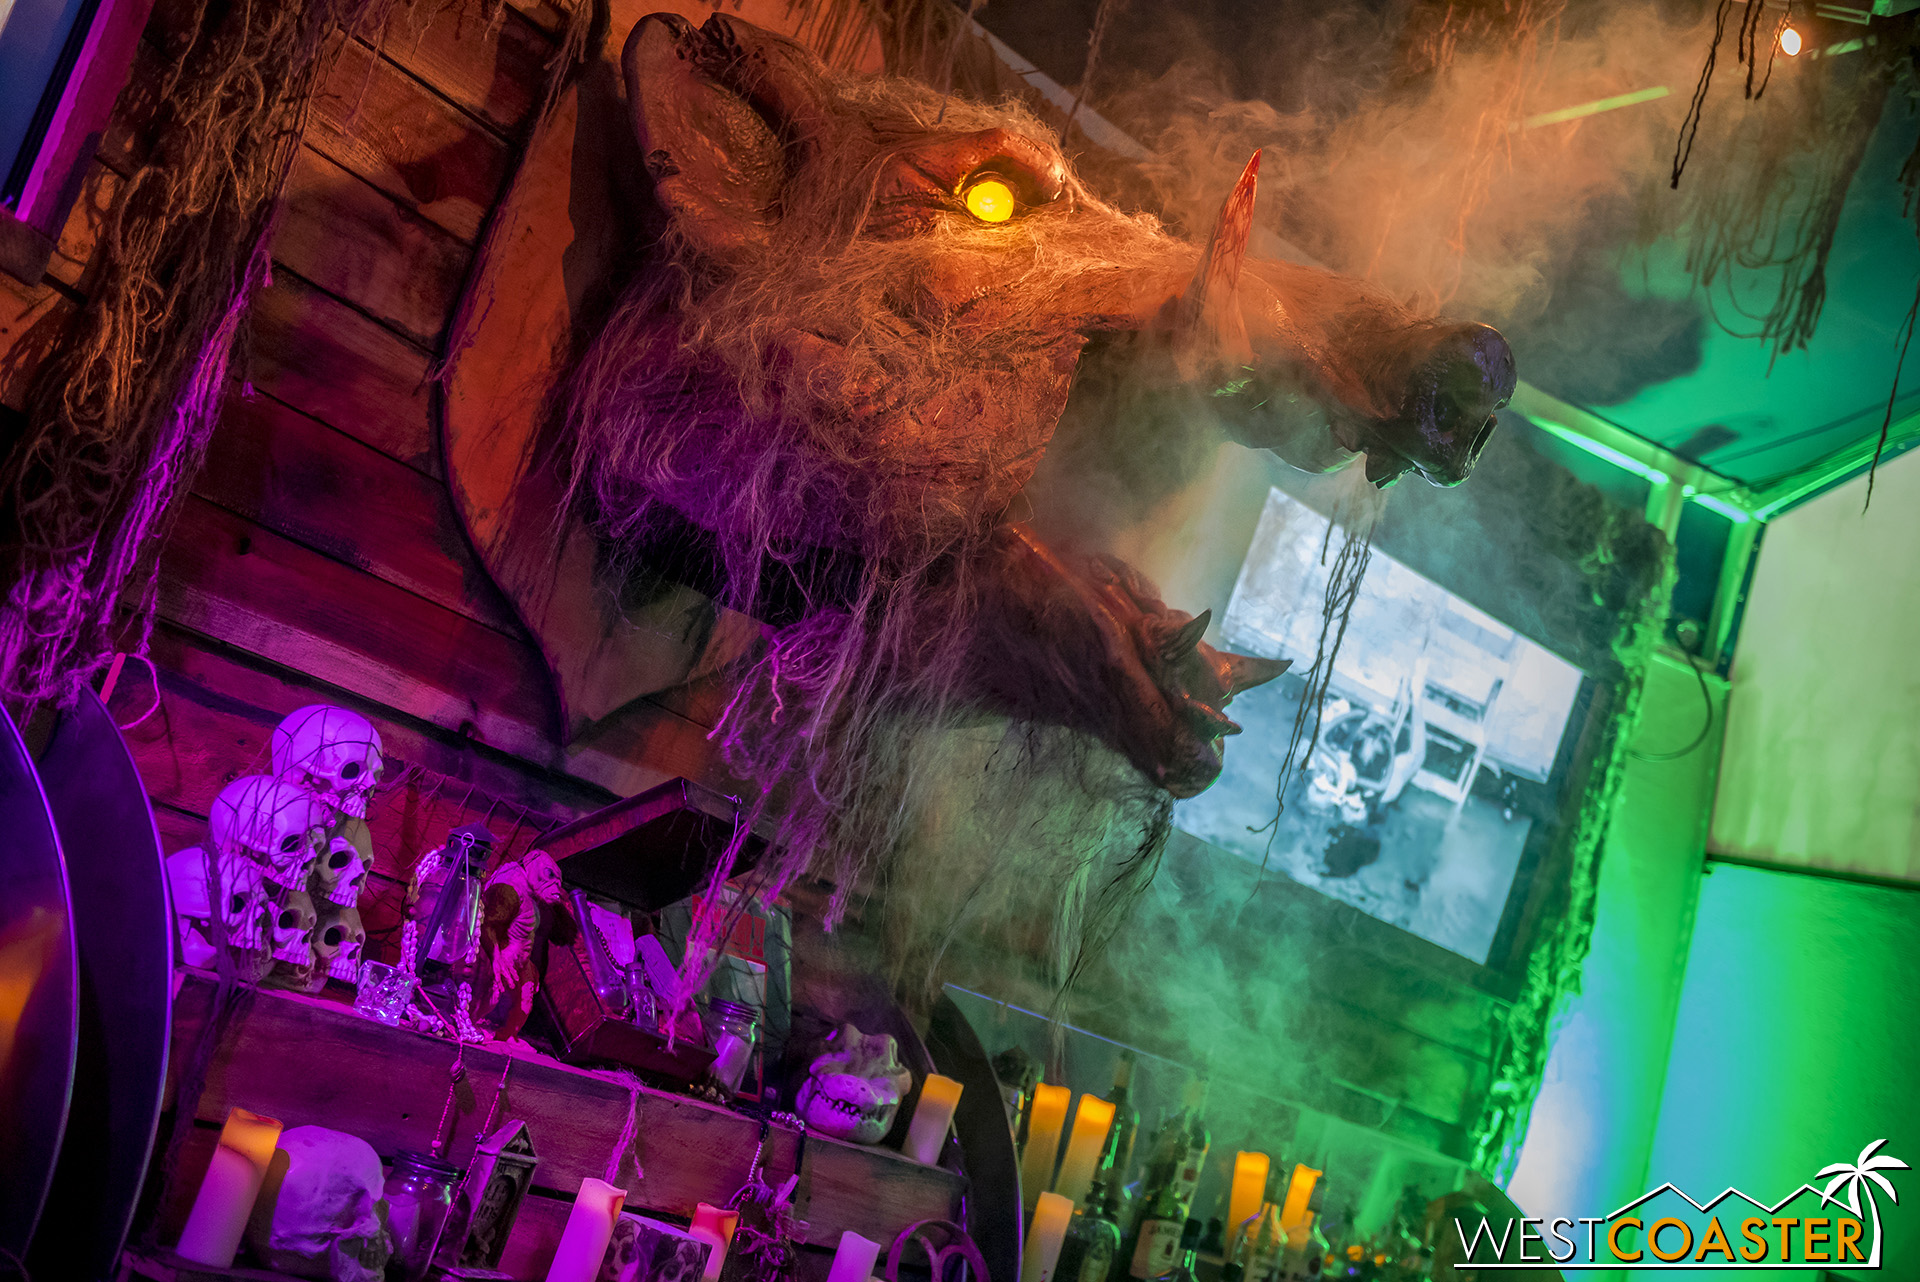 A roaring boar (coaster name coming soon to a Six Flags parks near you?) is one of various special effects triggered by ordering certain drinks.